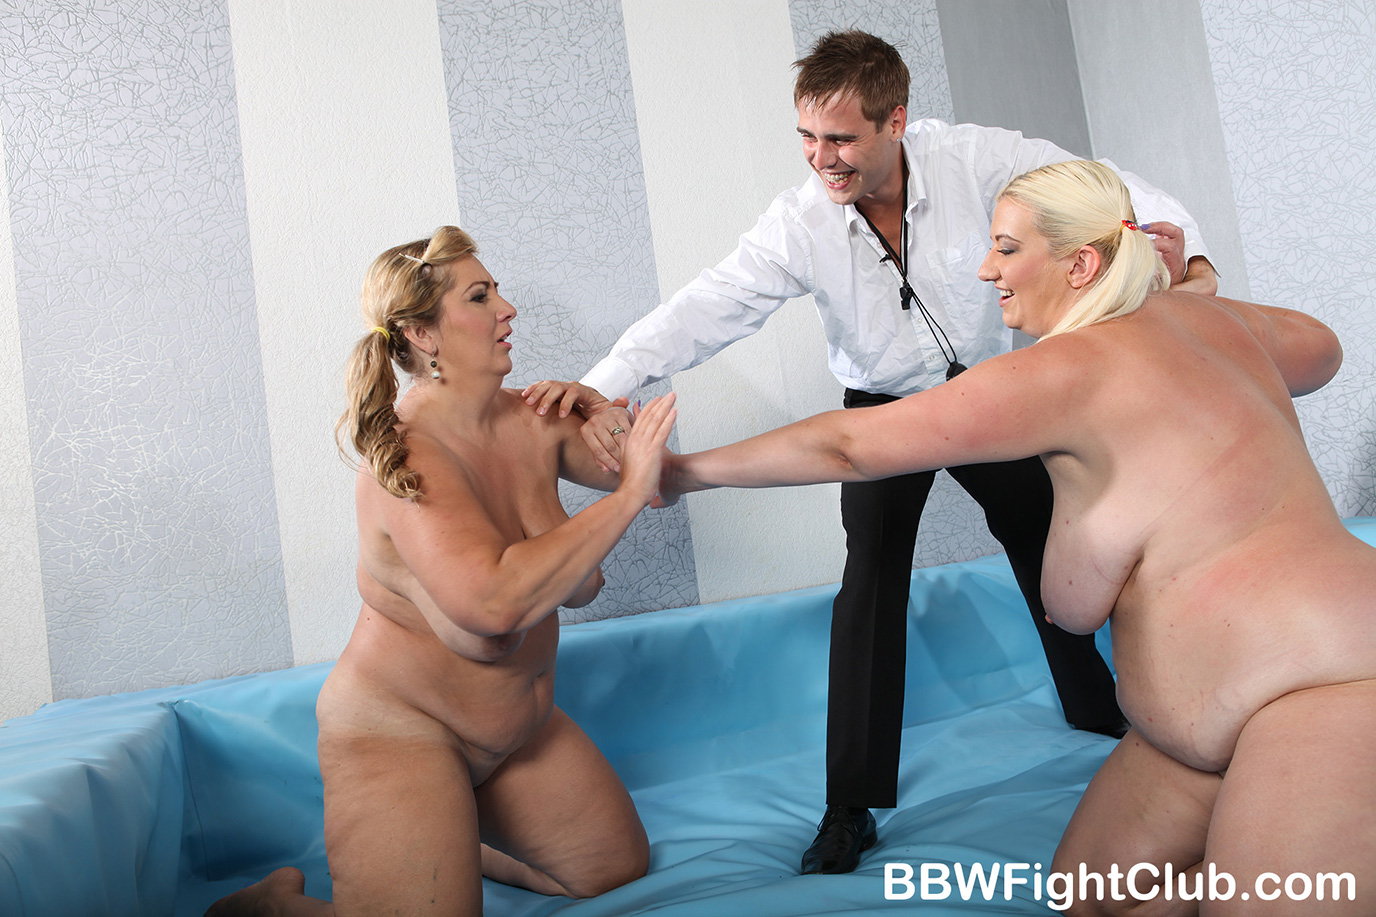 Naked fatties monika and jitka wrestling at bbw fight club 10